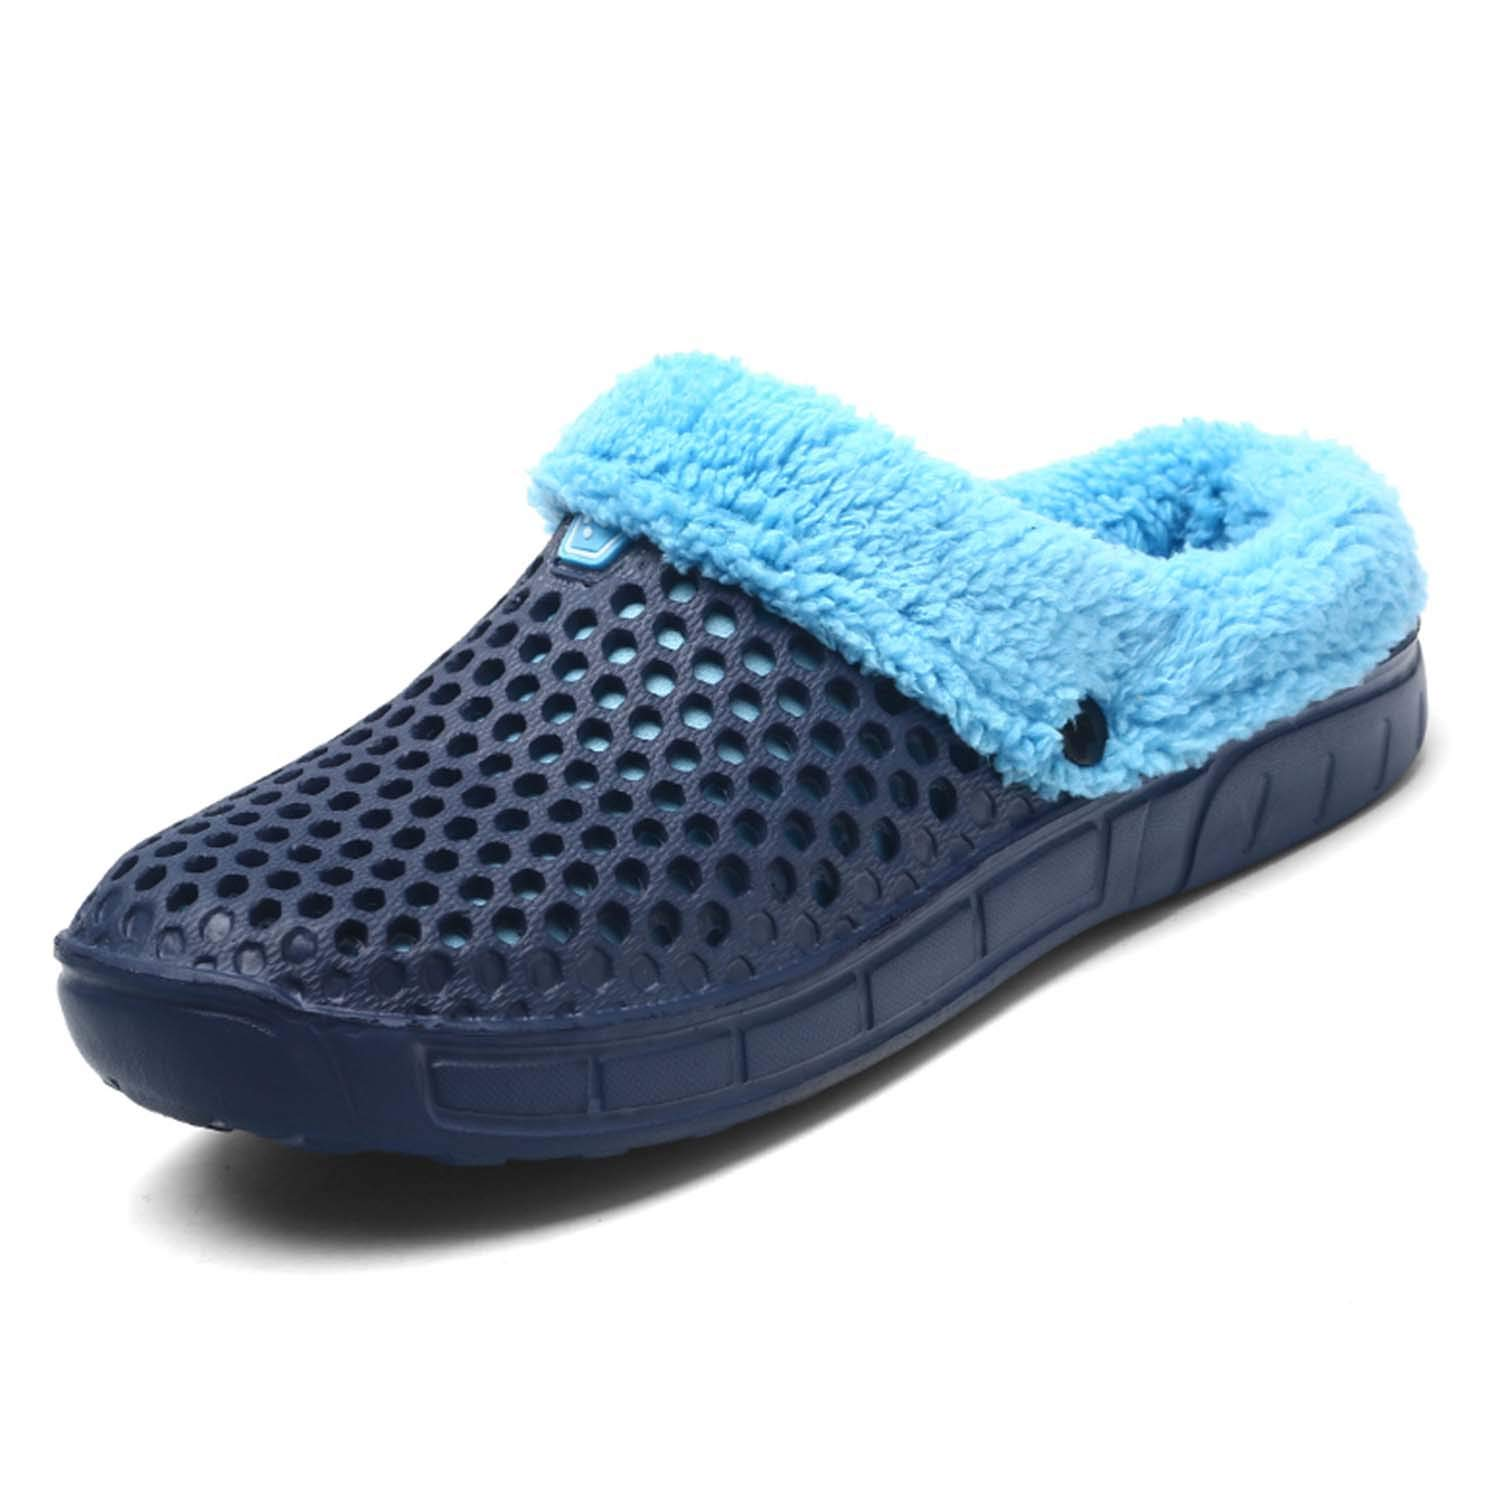 HMAIBO Men's Fur Lined Clogs House Slippers Winter Breathable Indoor Outdoor Walking Garden Shoes Warm Non-Slip Mule Footwear Blue 44